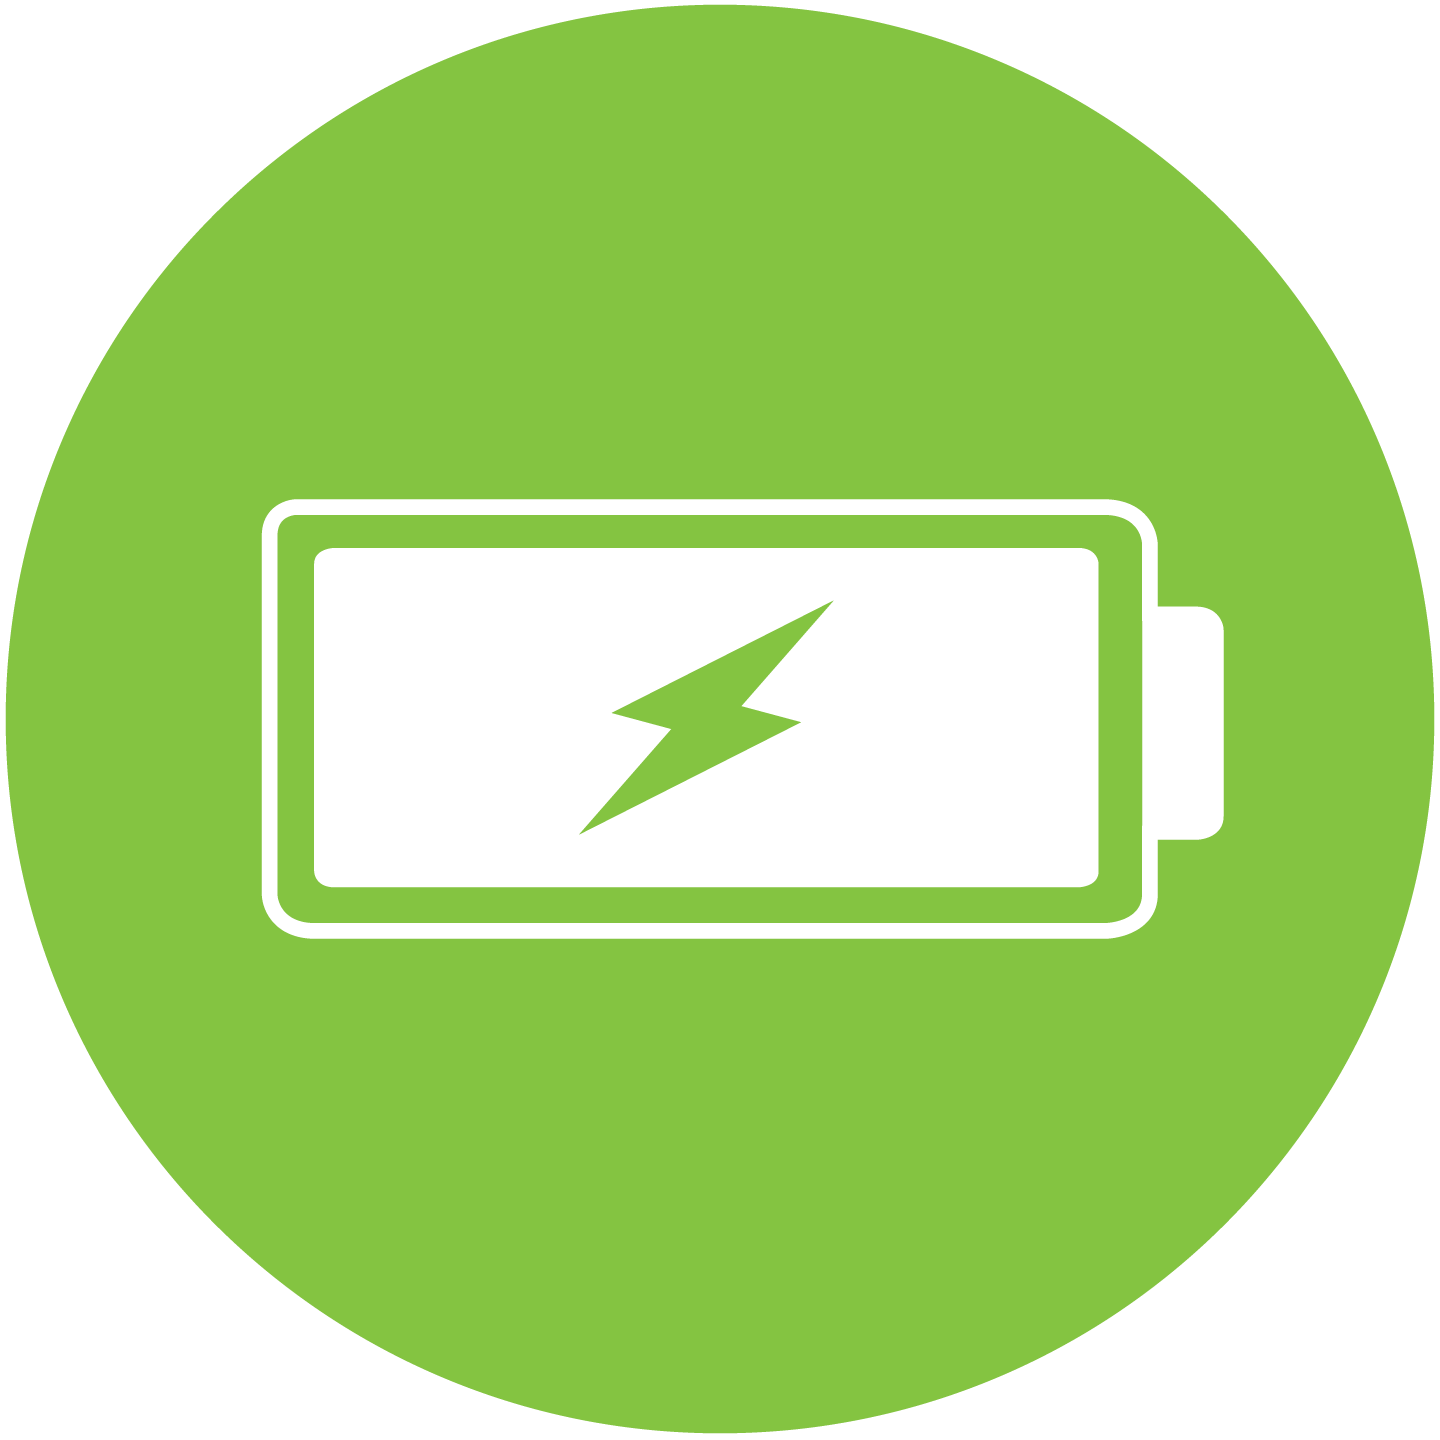 Download Battery Charging PNG Images Transparent Gallery. Advertisement - Battery Charging PNG